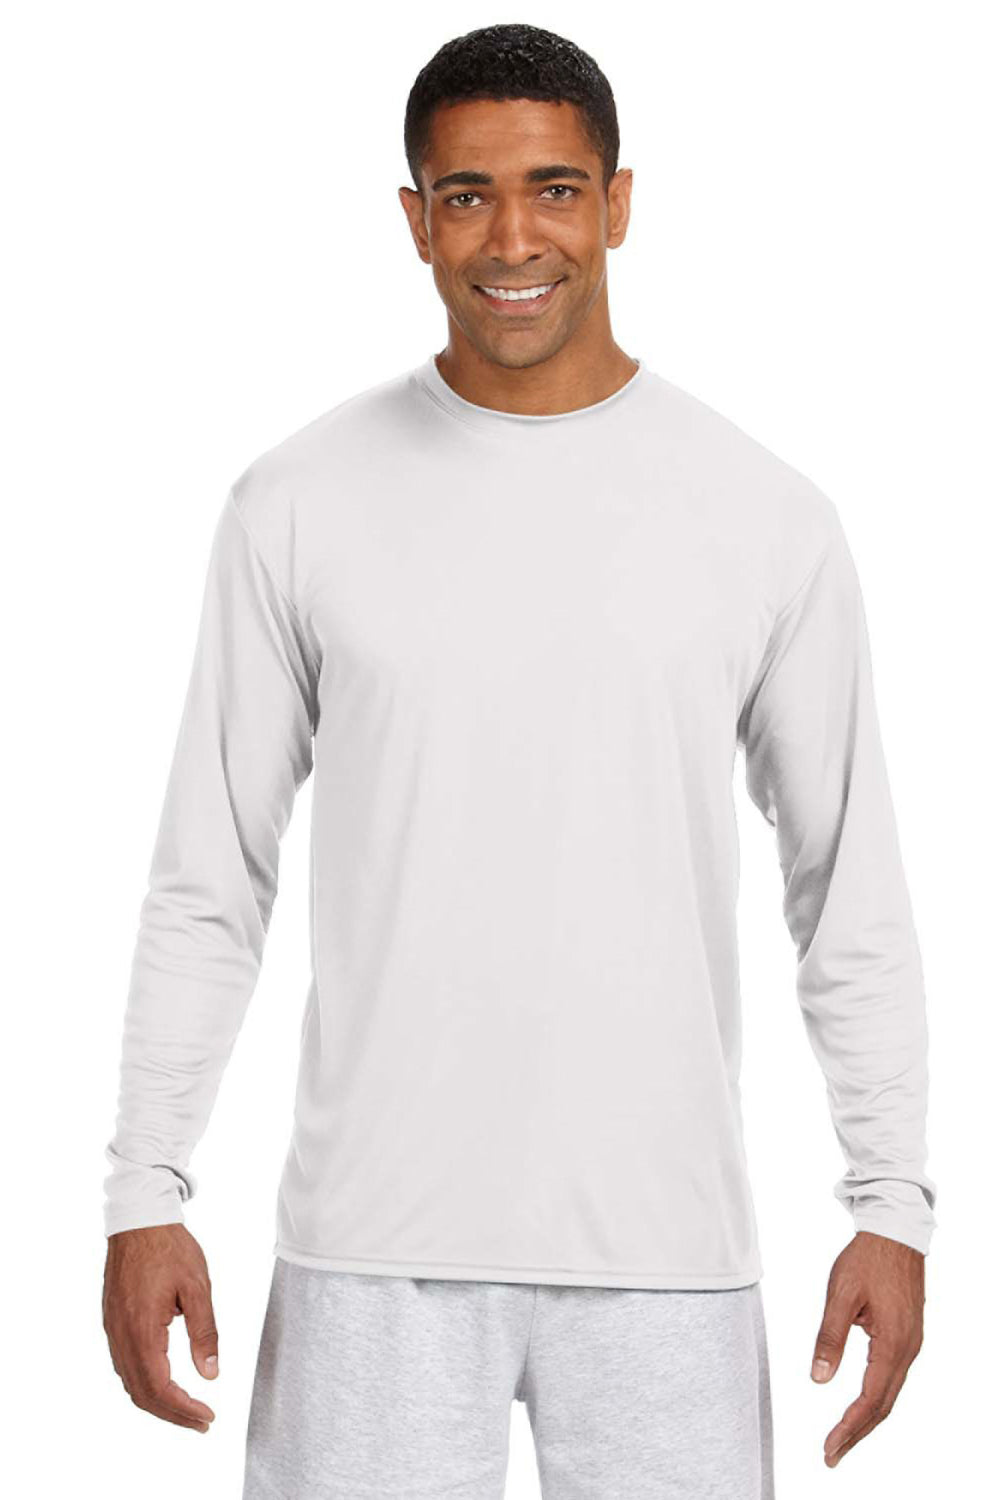 A4 N3165 Mens Cooling Performance Moisture Wicking Long Sleeve Crewneck T-Shirt White Front